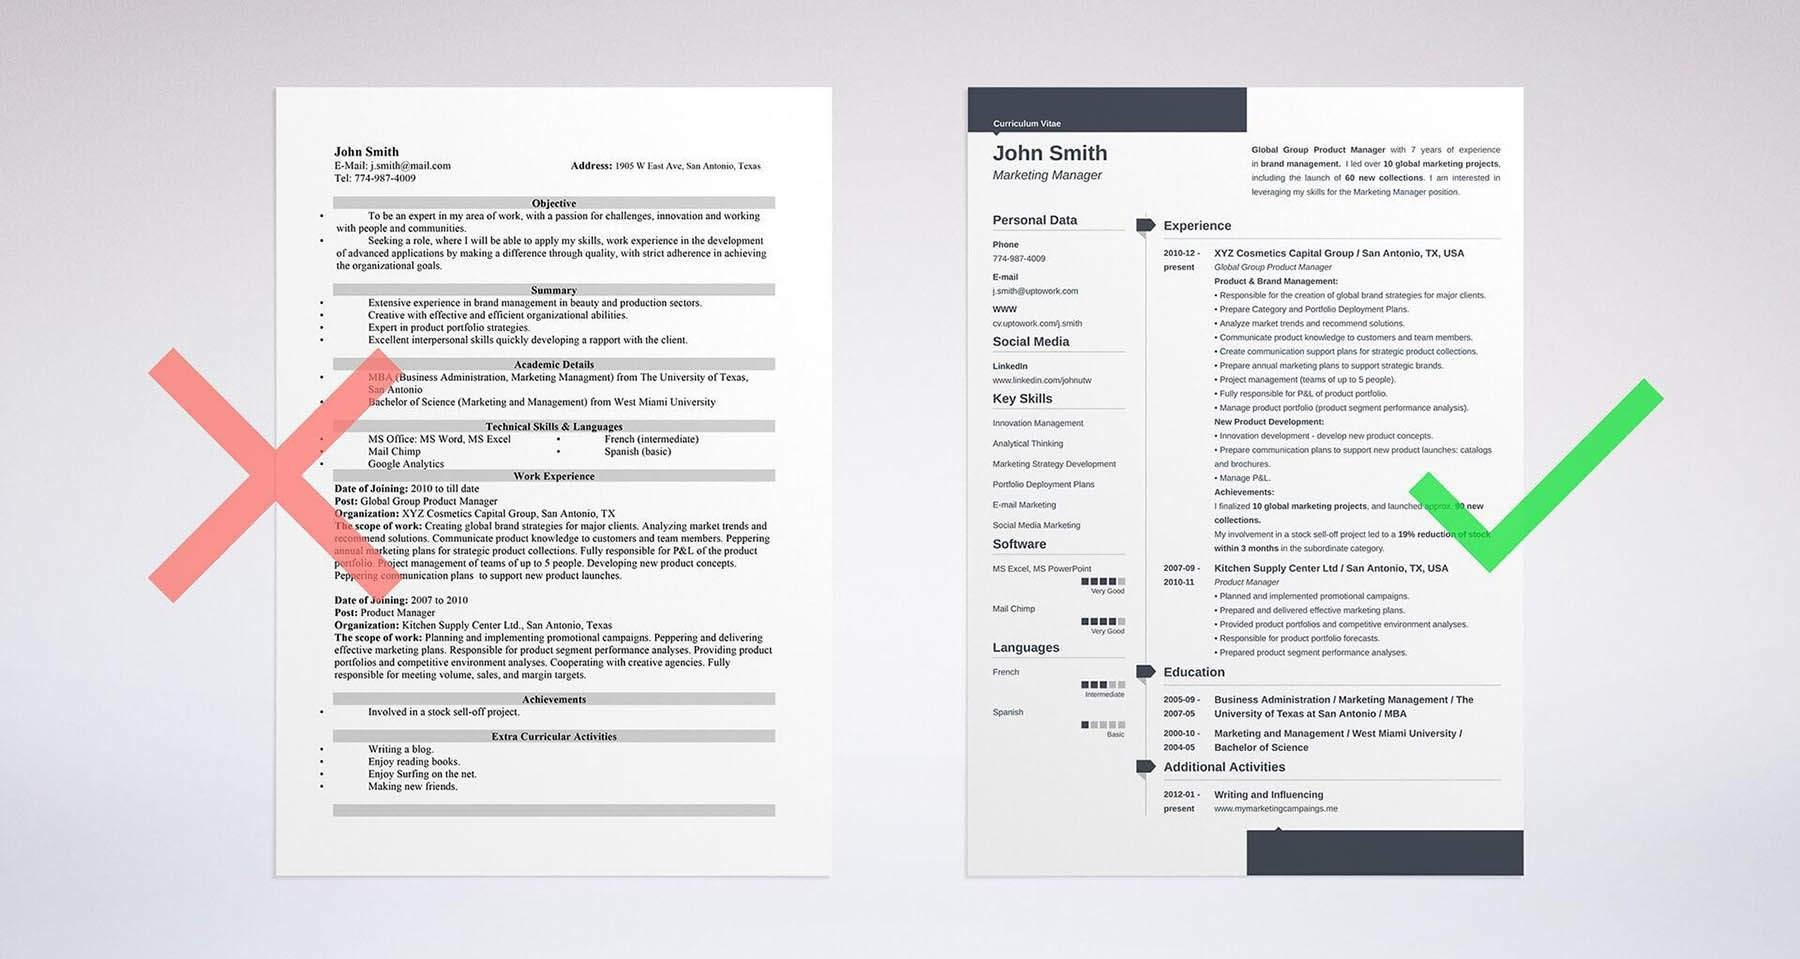 20 resume objective examples use them on your resume tips sample resume objective see 20 resume templates and create your resume here altavistaventures Choice Image